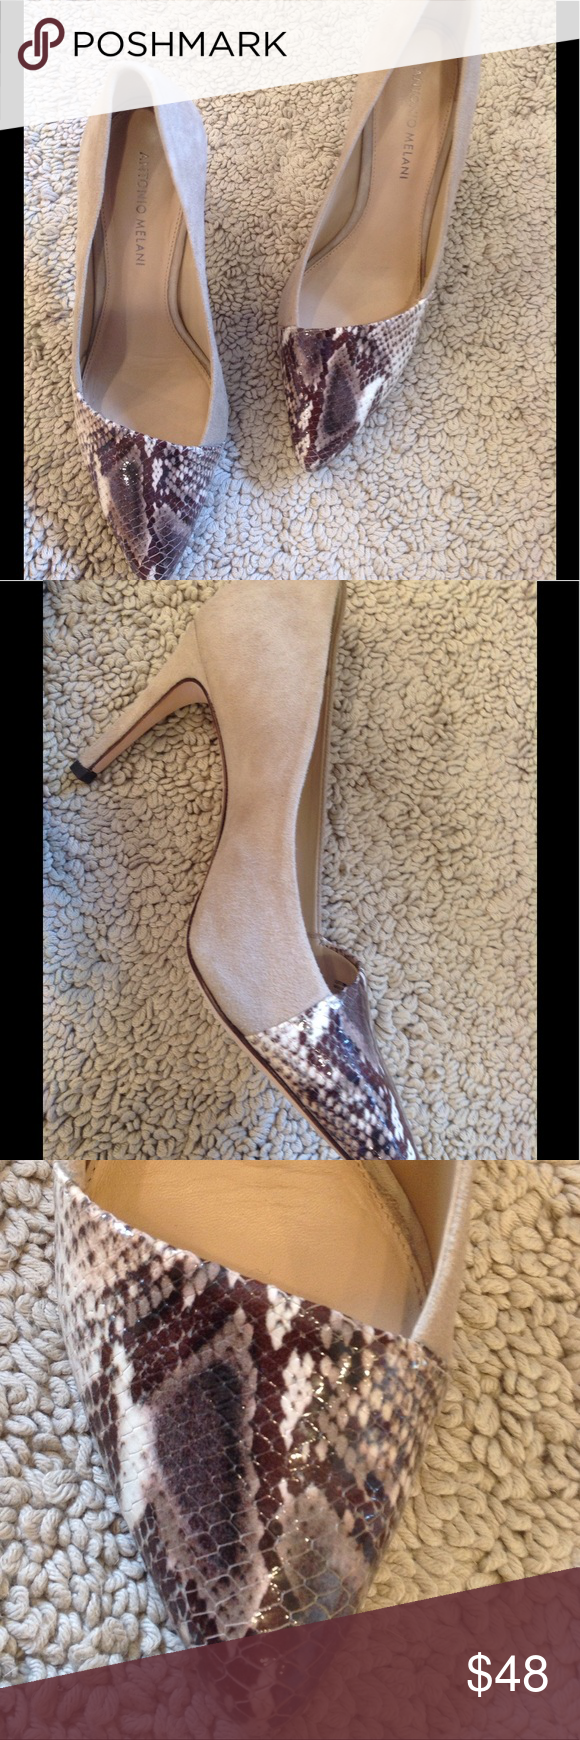 Heels High Heel Pumps.  Suede with Asymmetrical Animal Print Toe.  Worn Twice!! ANTONIO MELANI Shoes Heels